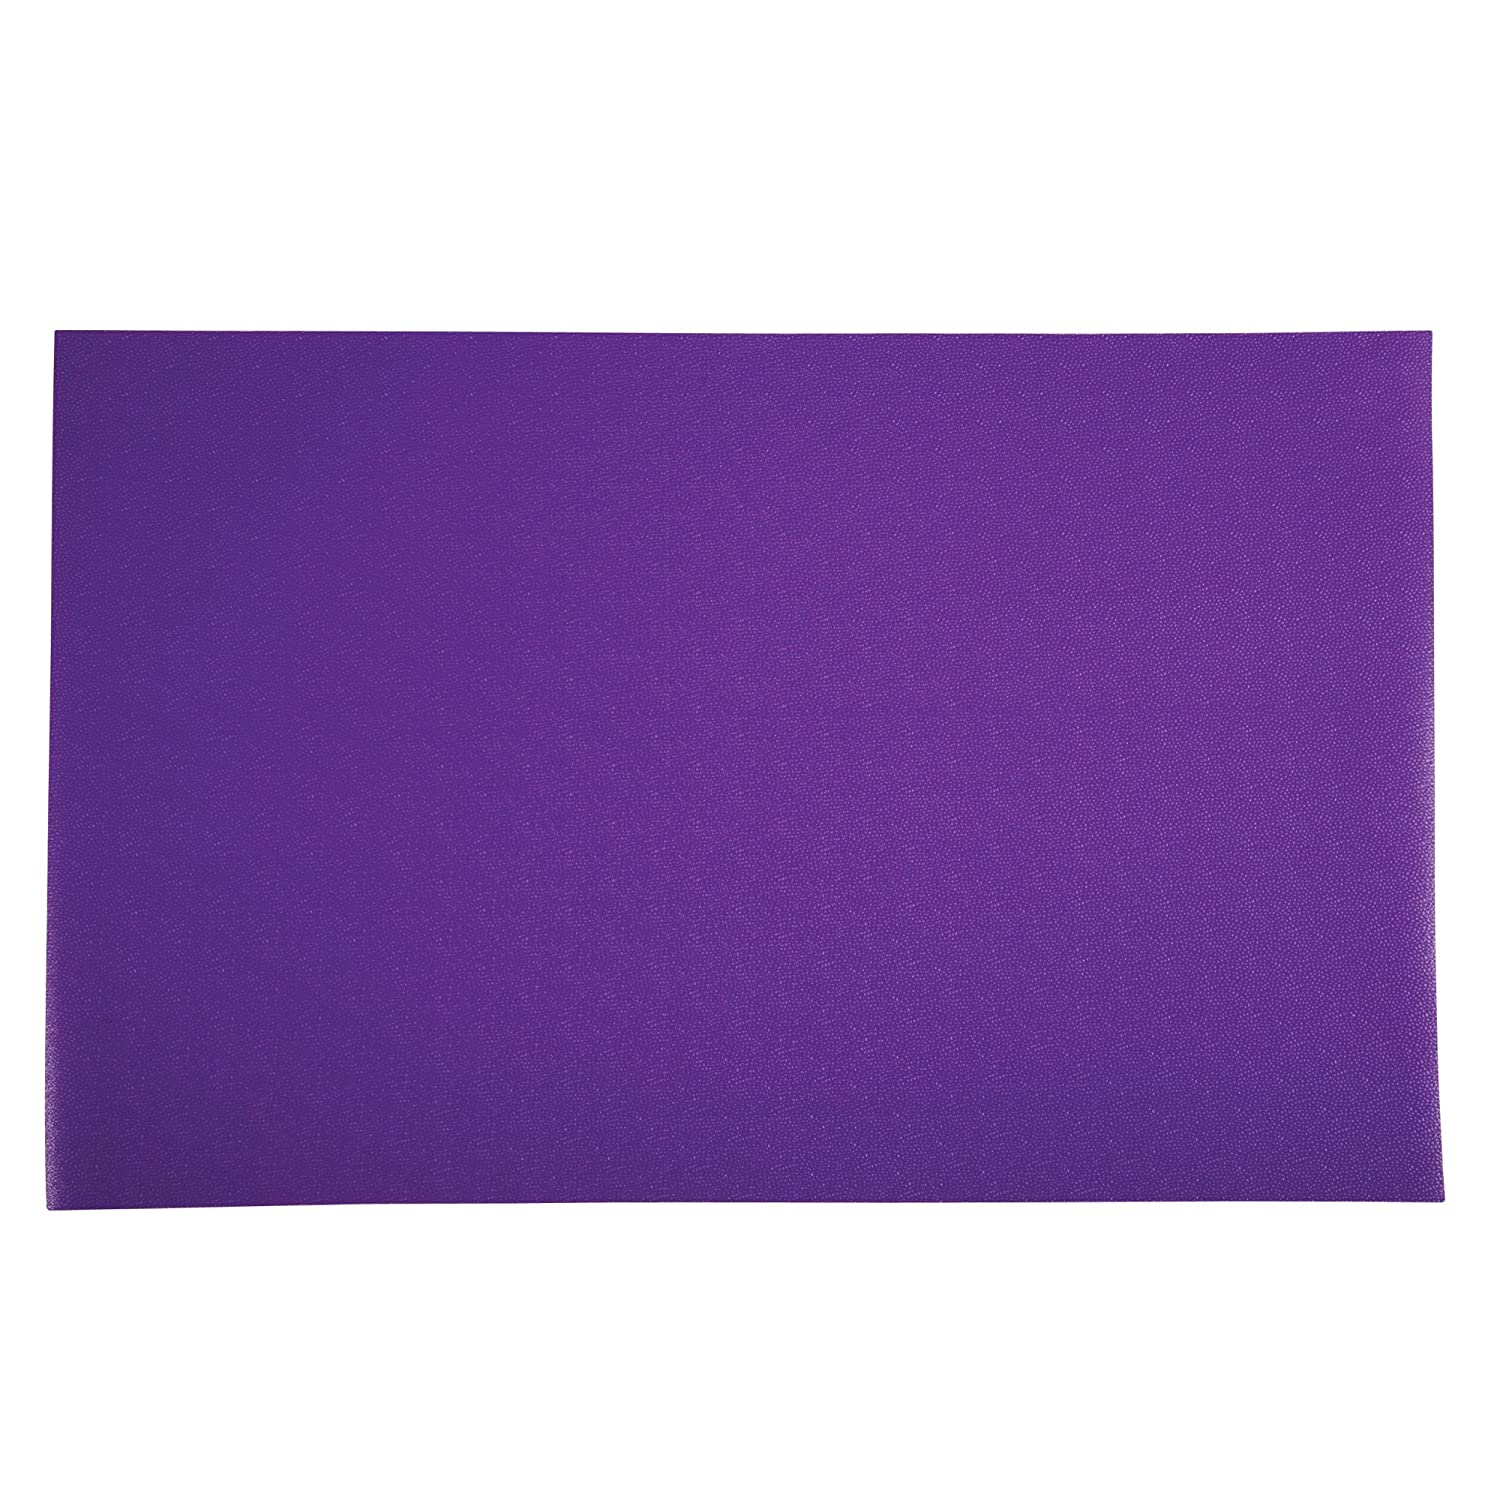 Top Performance Grooming Table Mat for Pets 24 by 48-Inch Purple